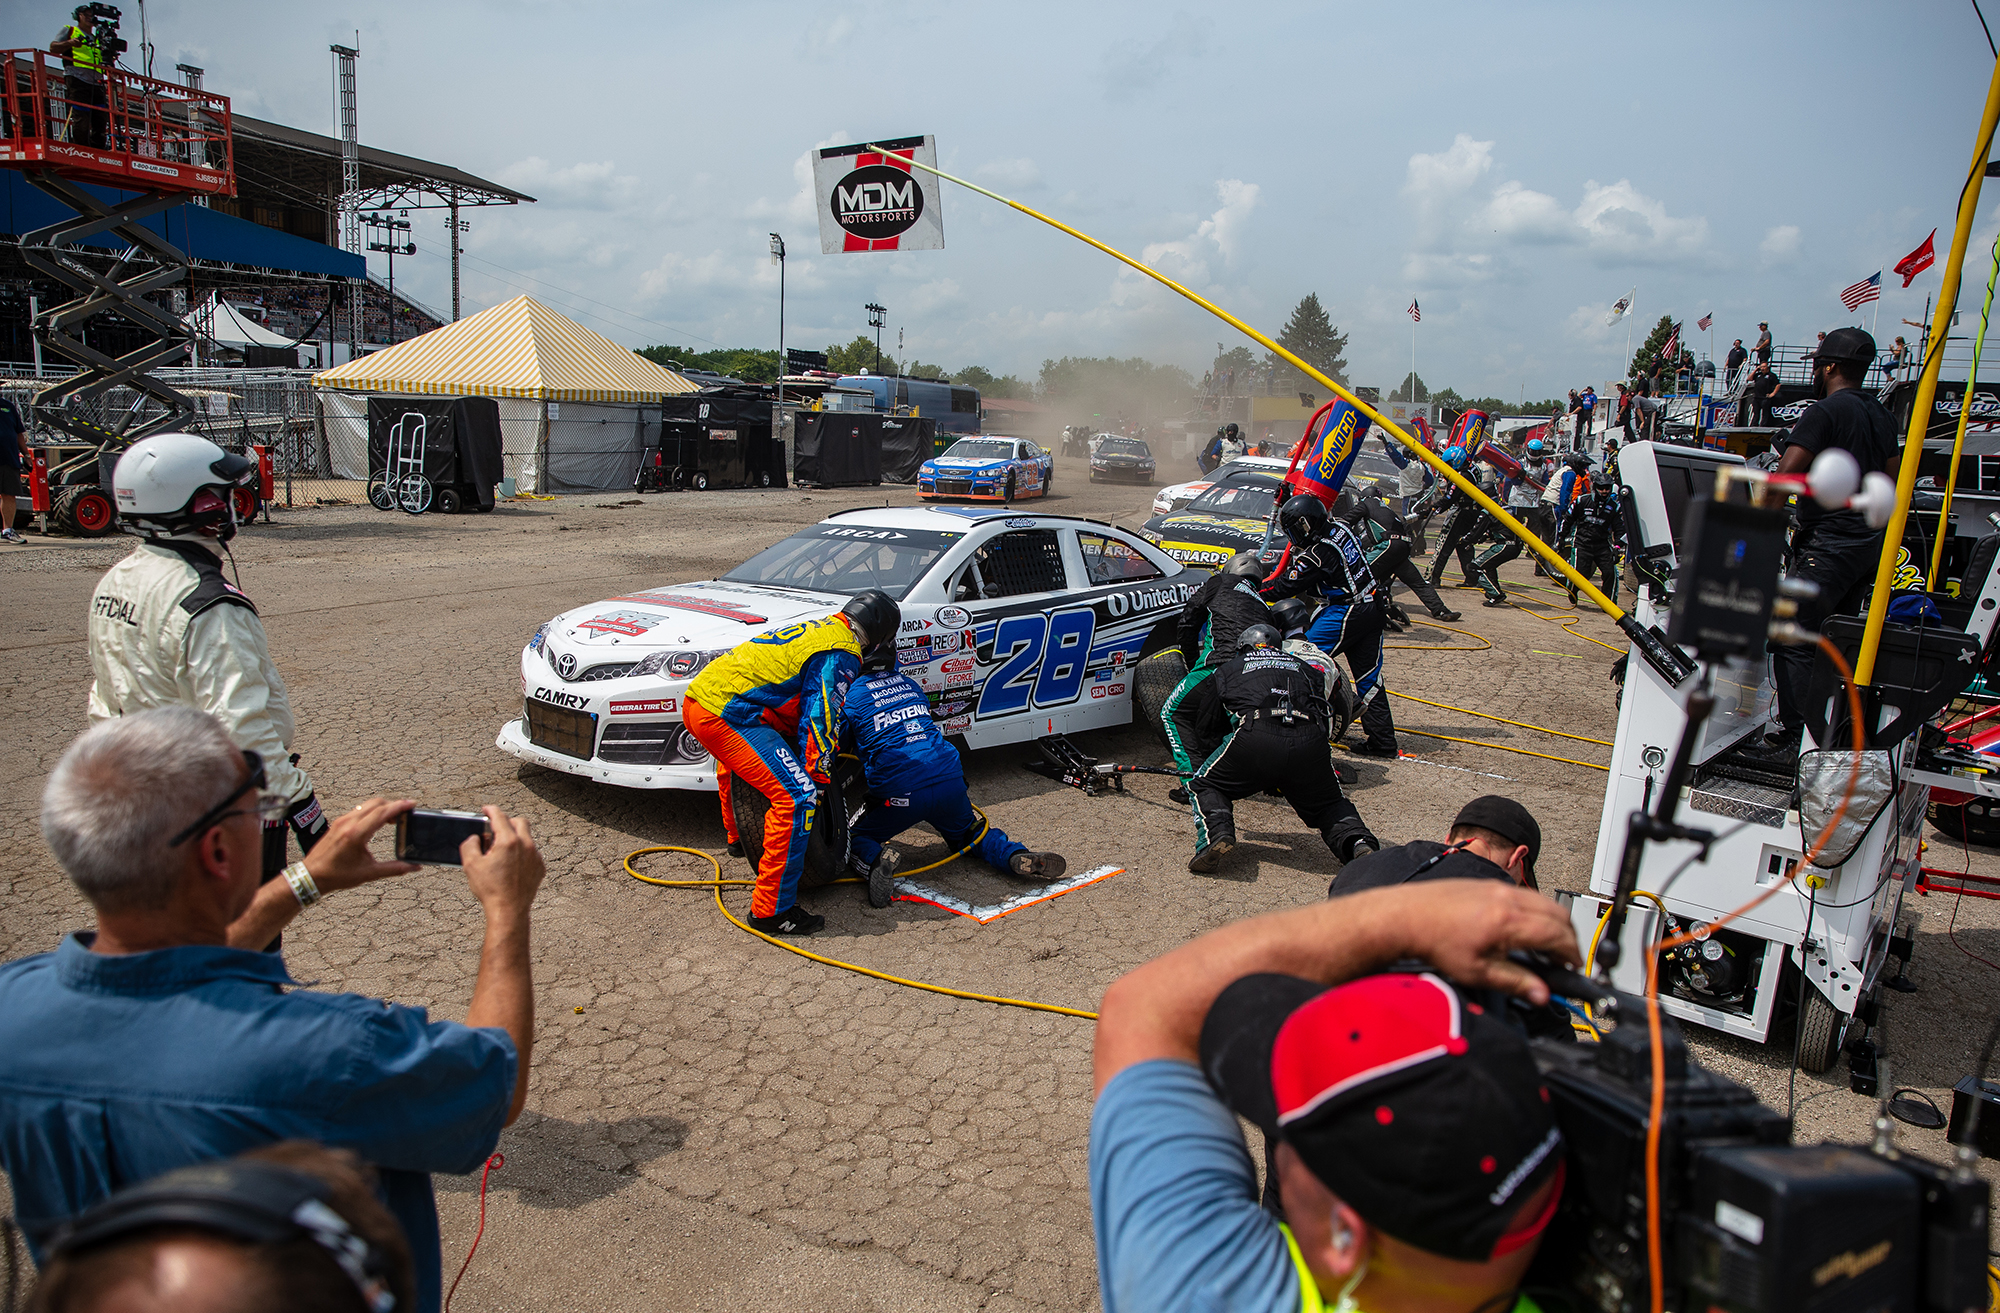 Sheldon Creed comes in for a pit stop on a caution during the ARCA Racing Series Allen Crowe 100 on the Springfield Mile during the Illinois State Fair at the Illinois State Fairgrounds, Sunday, Aug. 19, 2018, in Springfield, Ill. [Justin L. Fowler/The State Journal-Register]